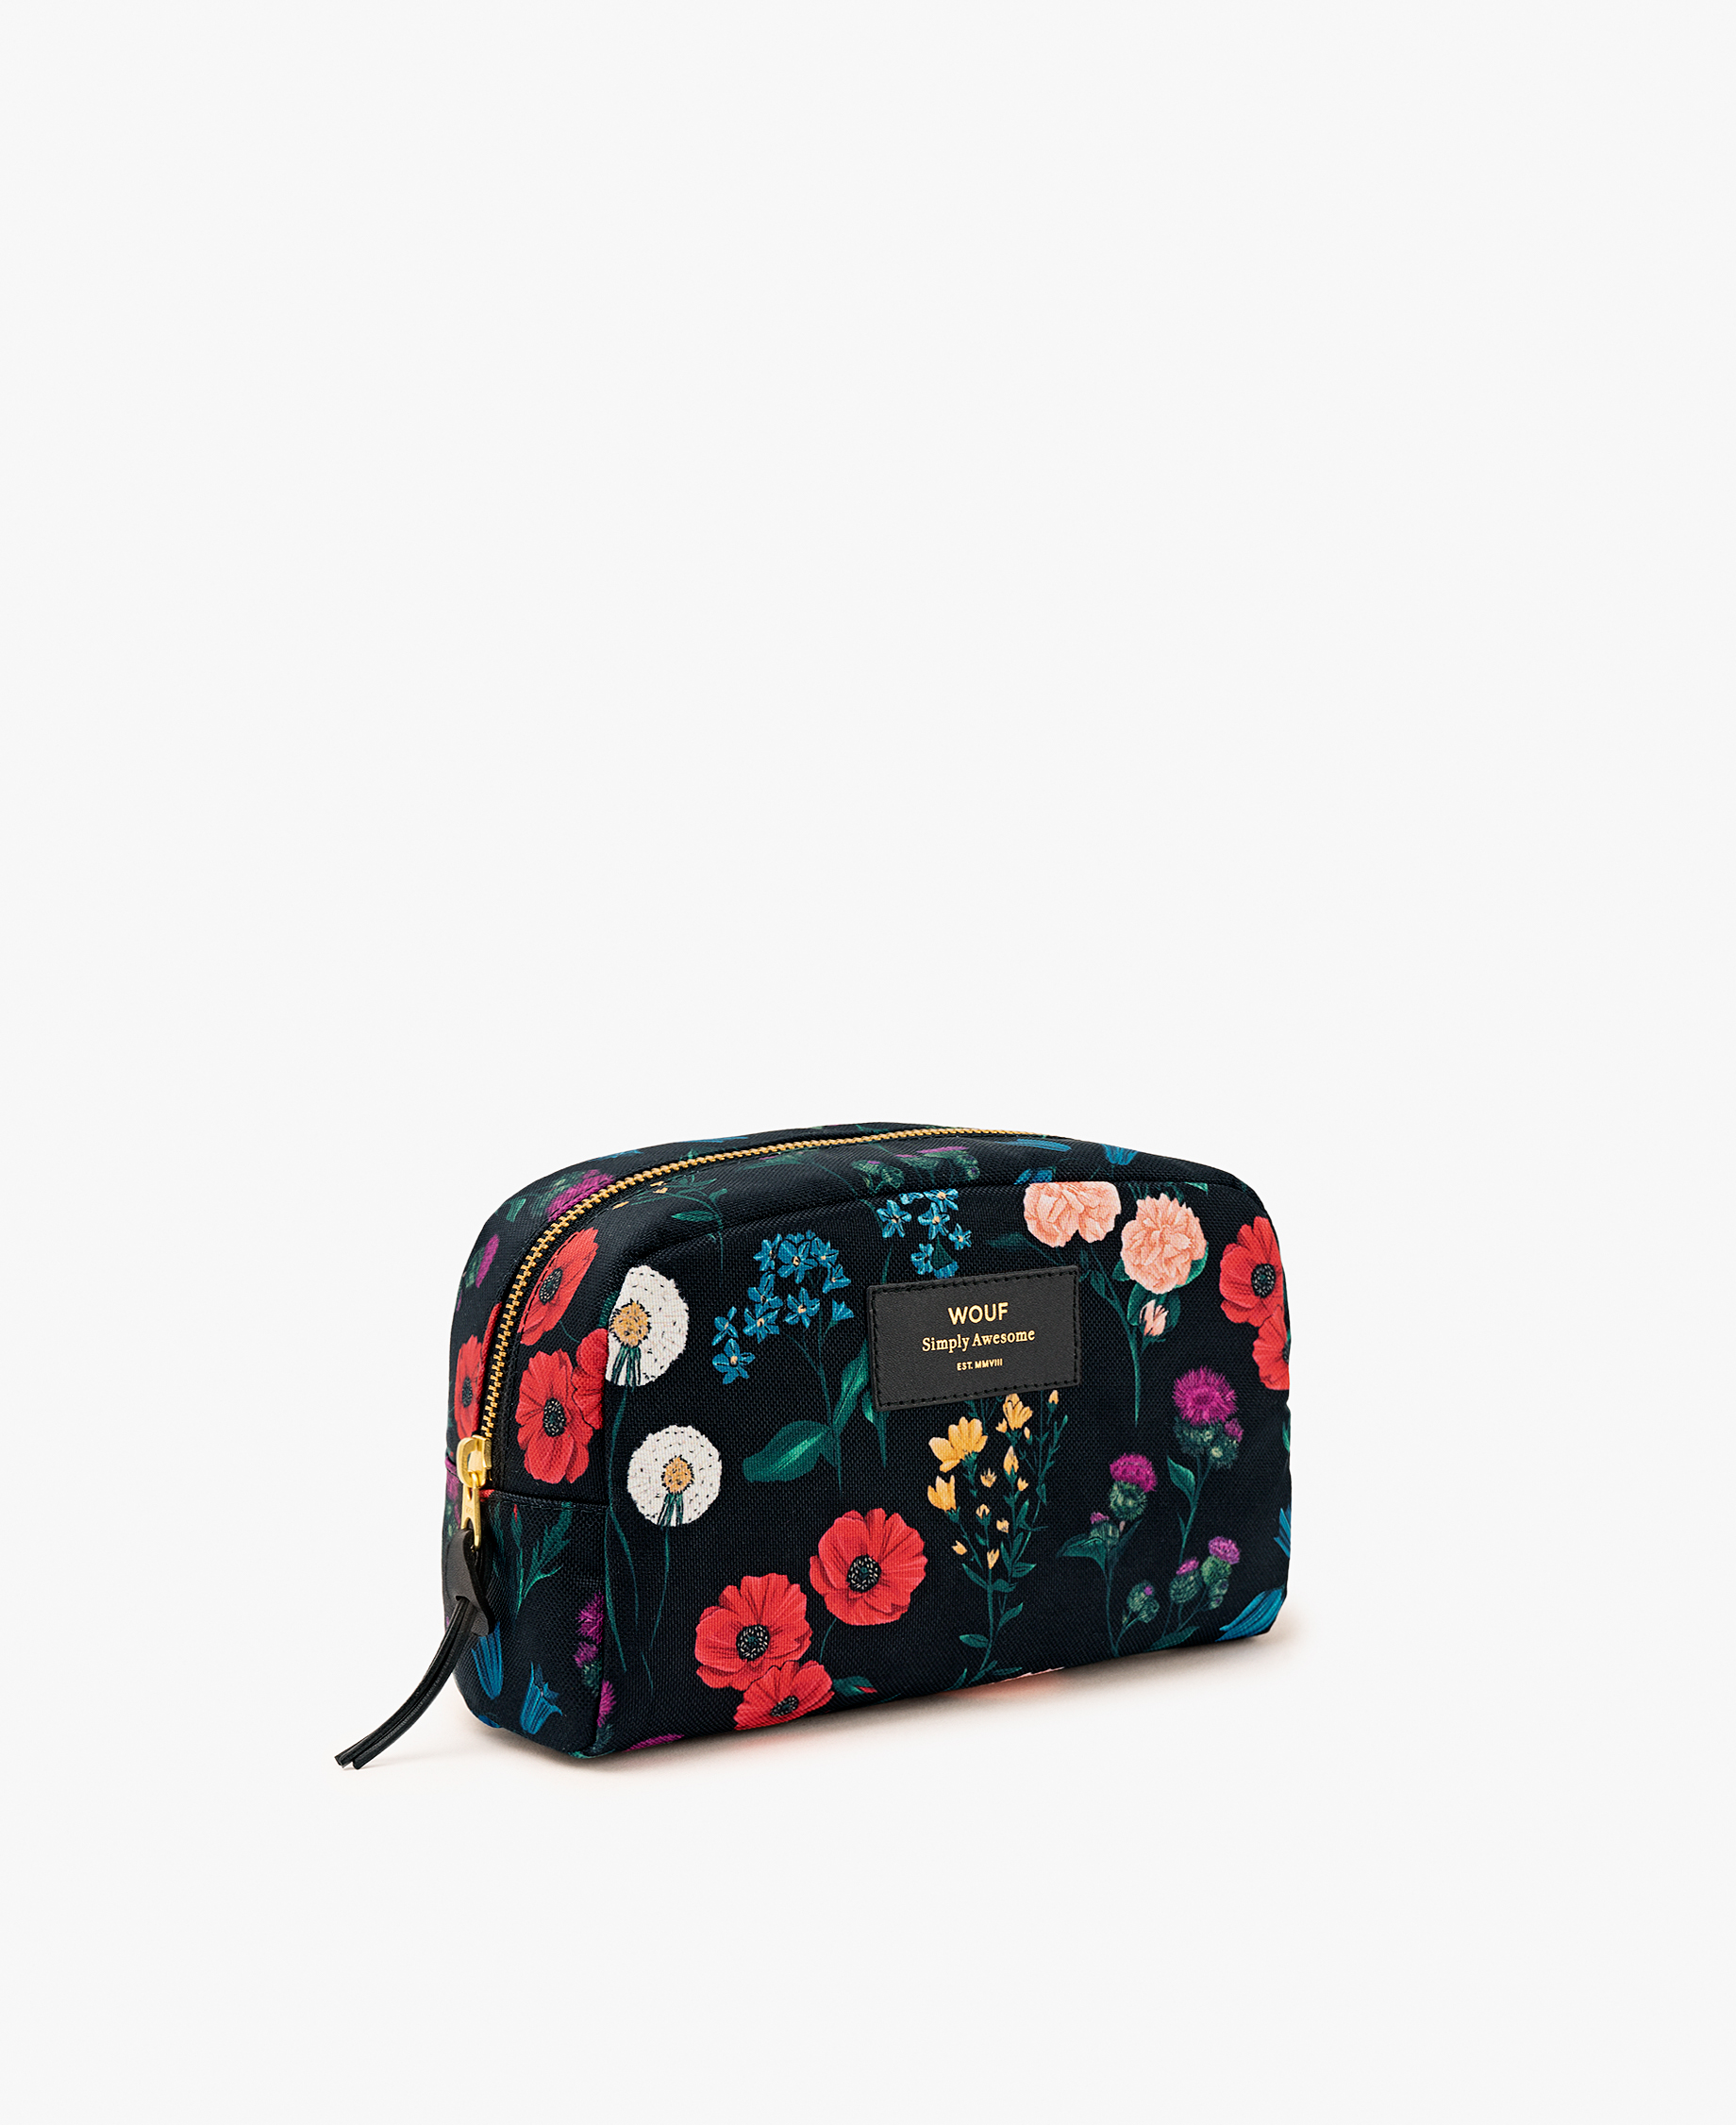 woman toiletry bag